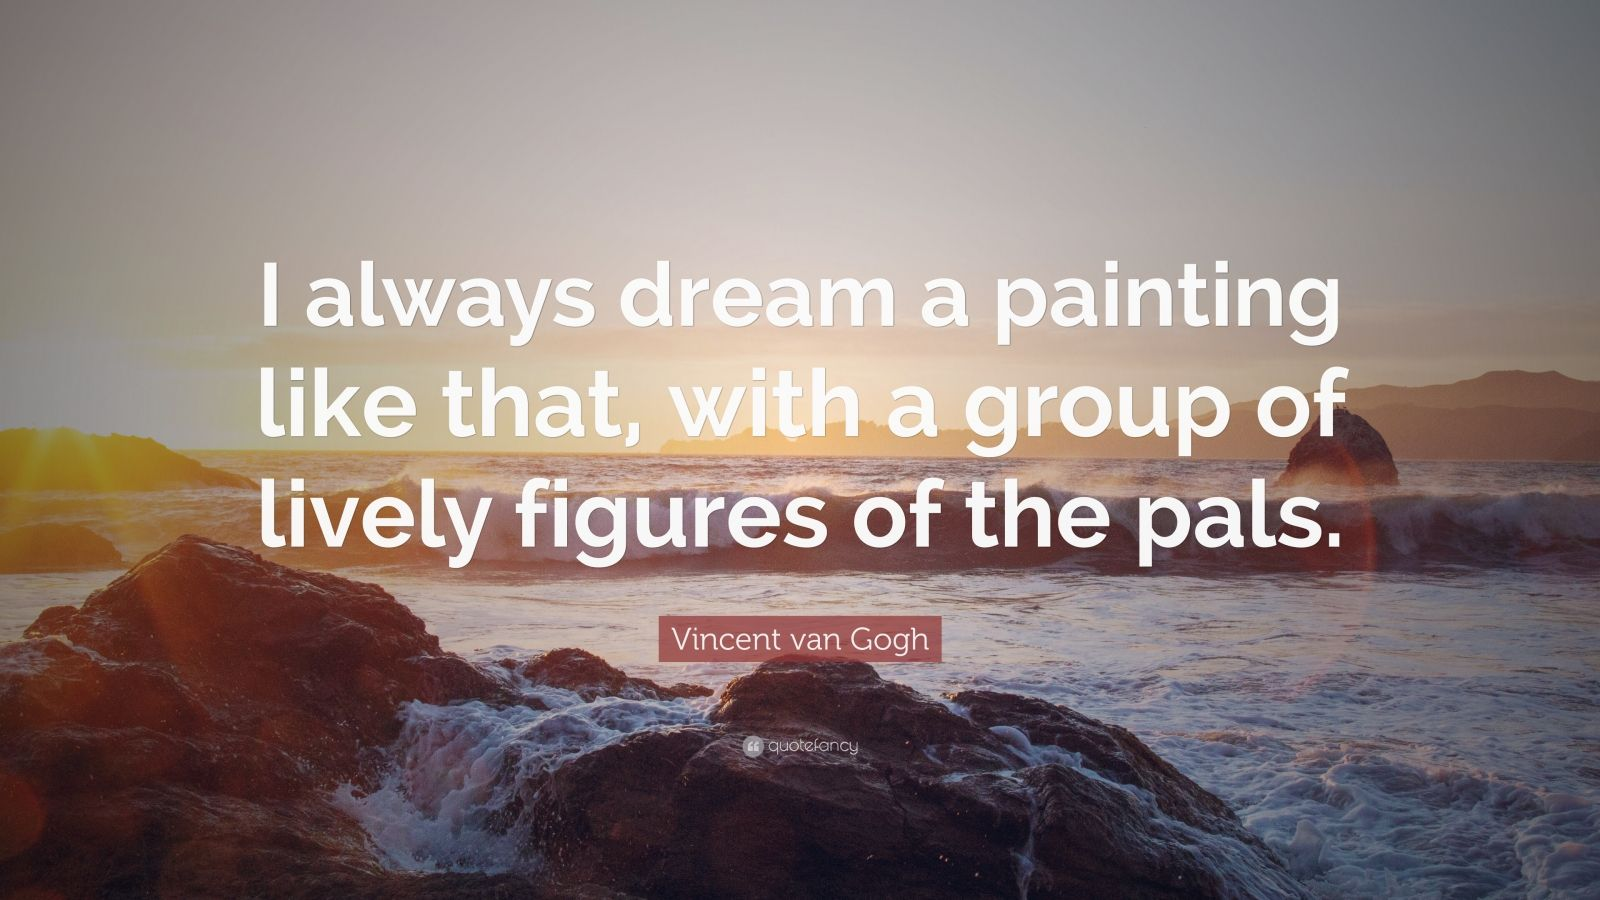 """Vincent van Gogh Quote: """"I always dream a painting like that, with a group of lively figures of the pals."""""""